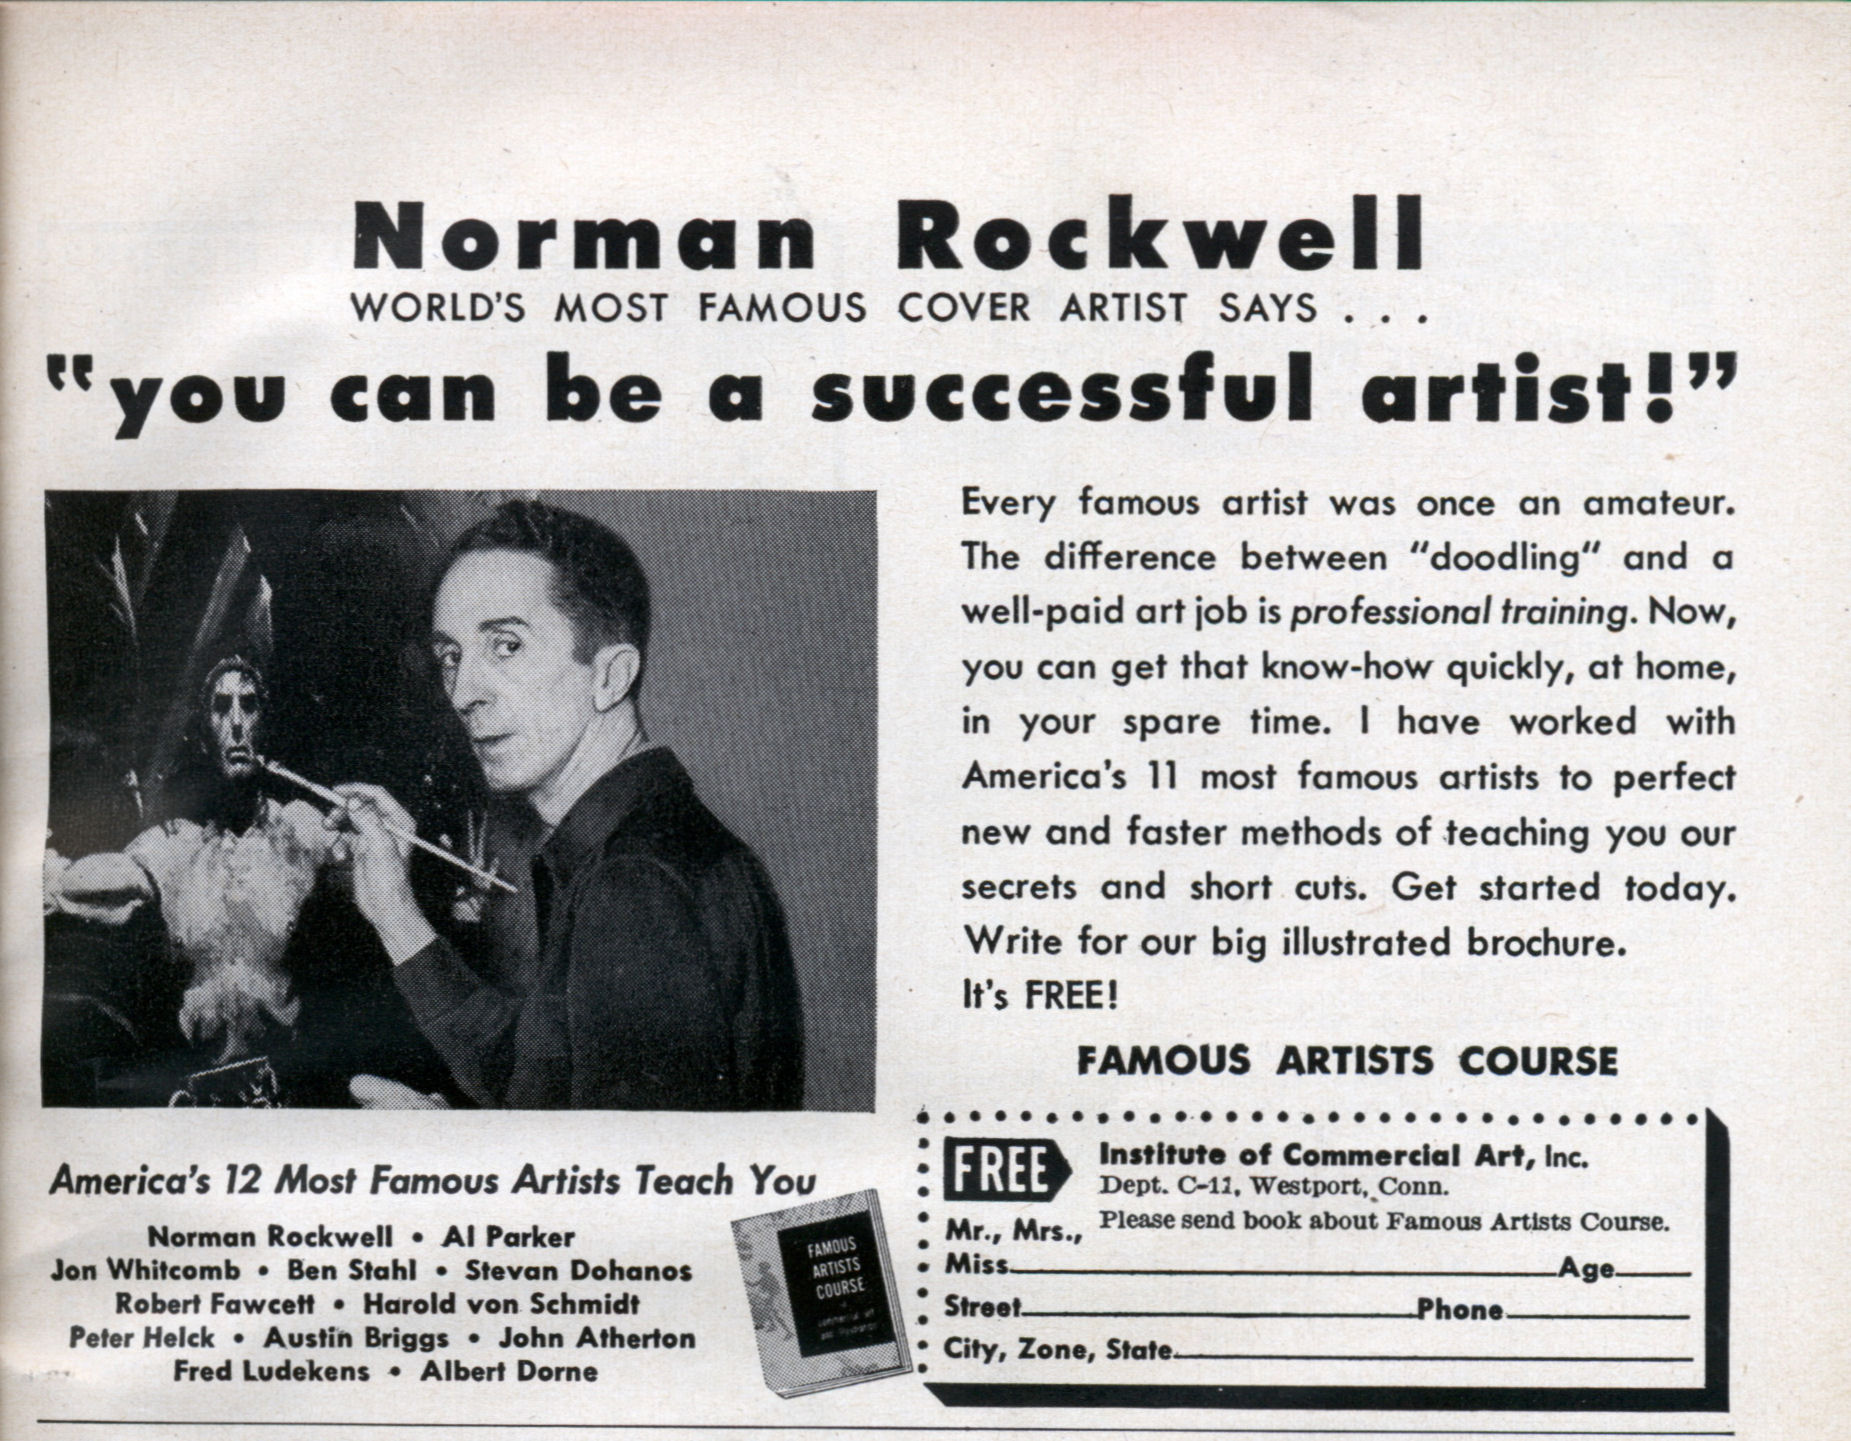 Norman Rockwell Online - Art cyclopedia: The Fine Art Search Engine